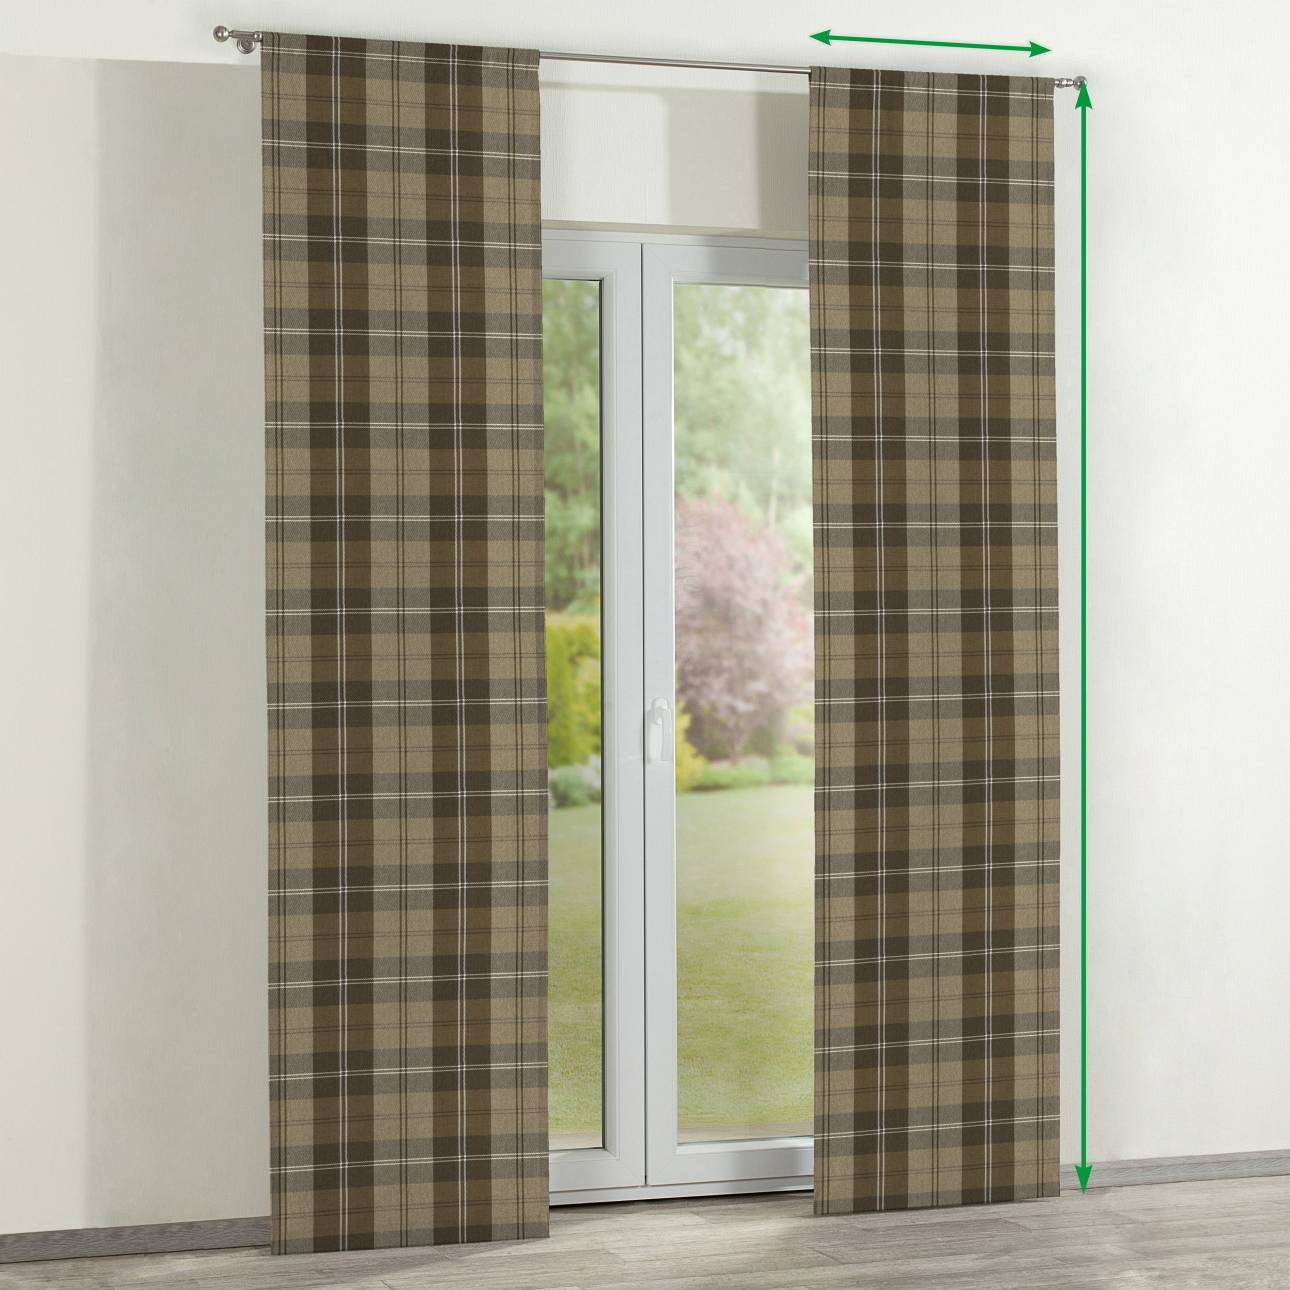 Slot panel curtains – Set of 2 in collection Edinburgh , fabric: 115-76